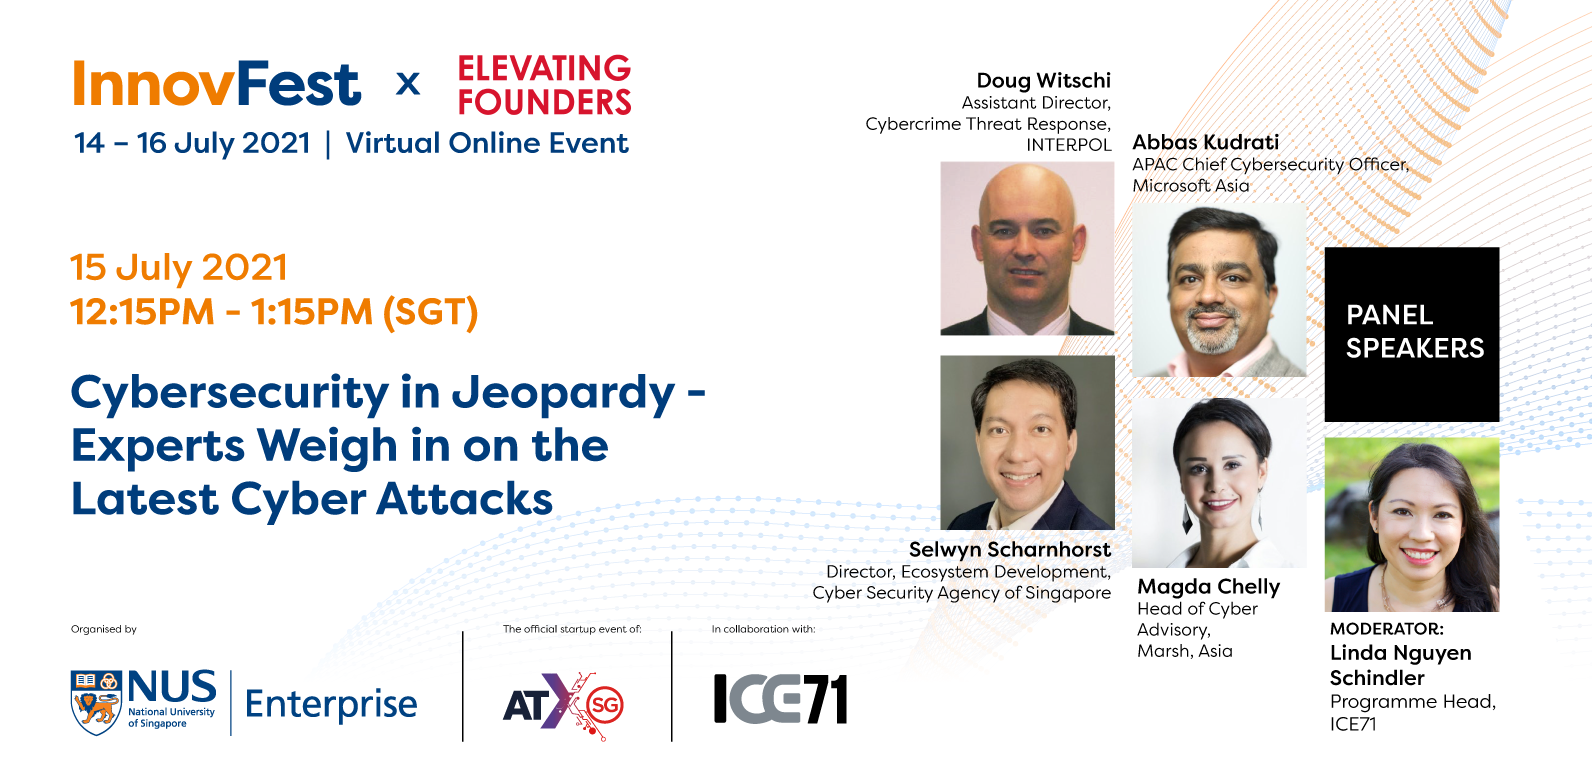 ICE71 at InnovFest: Cybersecurity in Jeopardy – Experts Weigh in on the Latest Cyber Attacks